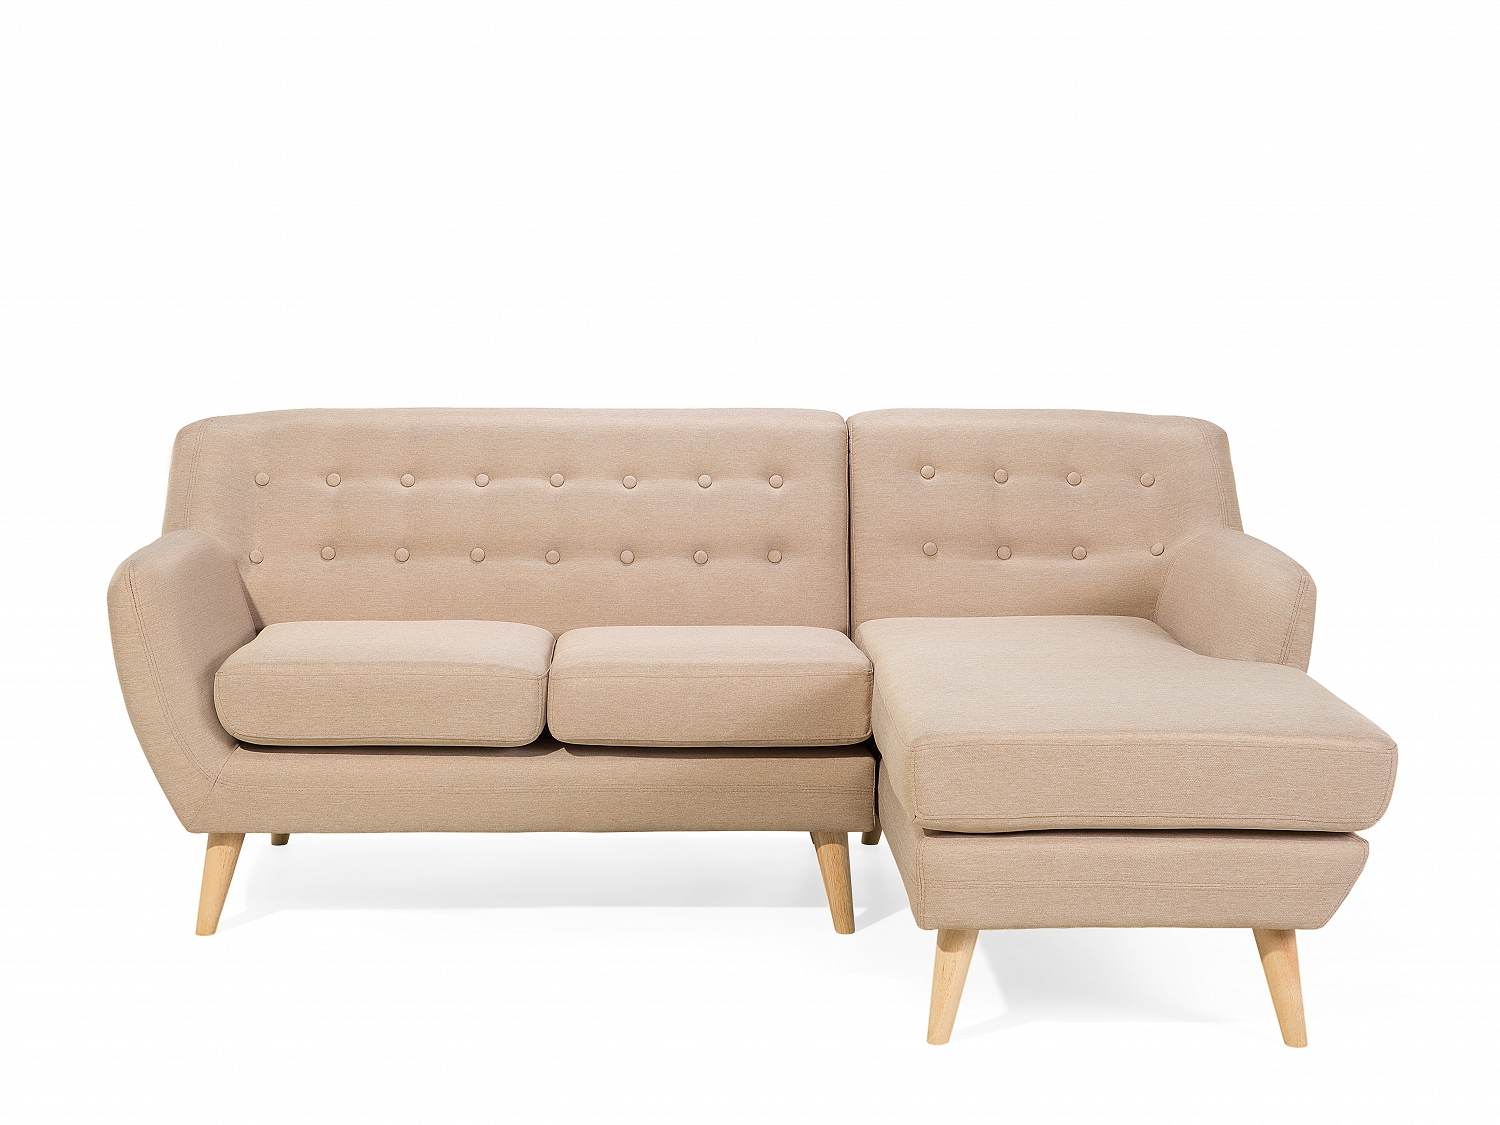 Corner sofa sectional couch fabric sofa retro beige for Ecksofa ebay kleinanzeigen